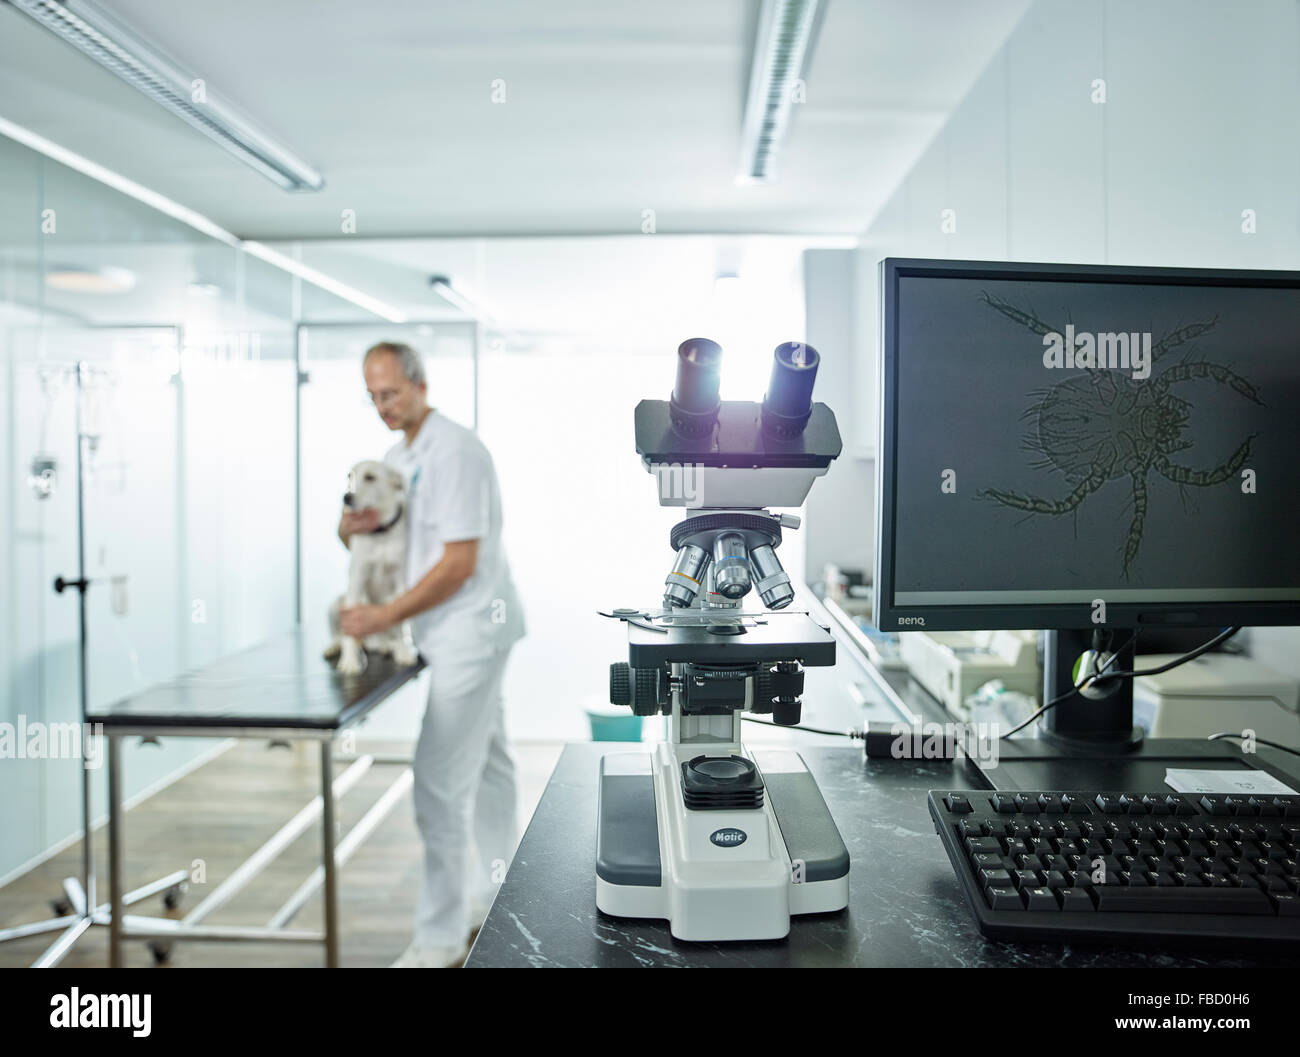 Microscope in veterinary practice, microscopic enlargement of mite on monitor screen, vet examining dog, Austria - Stock Image